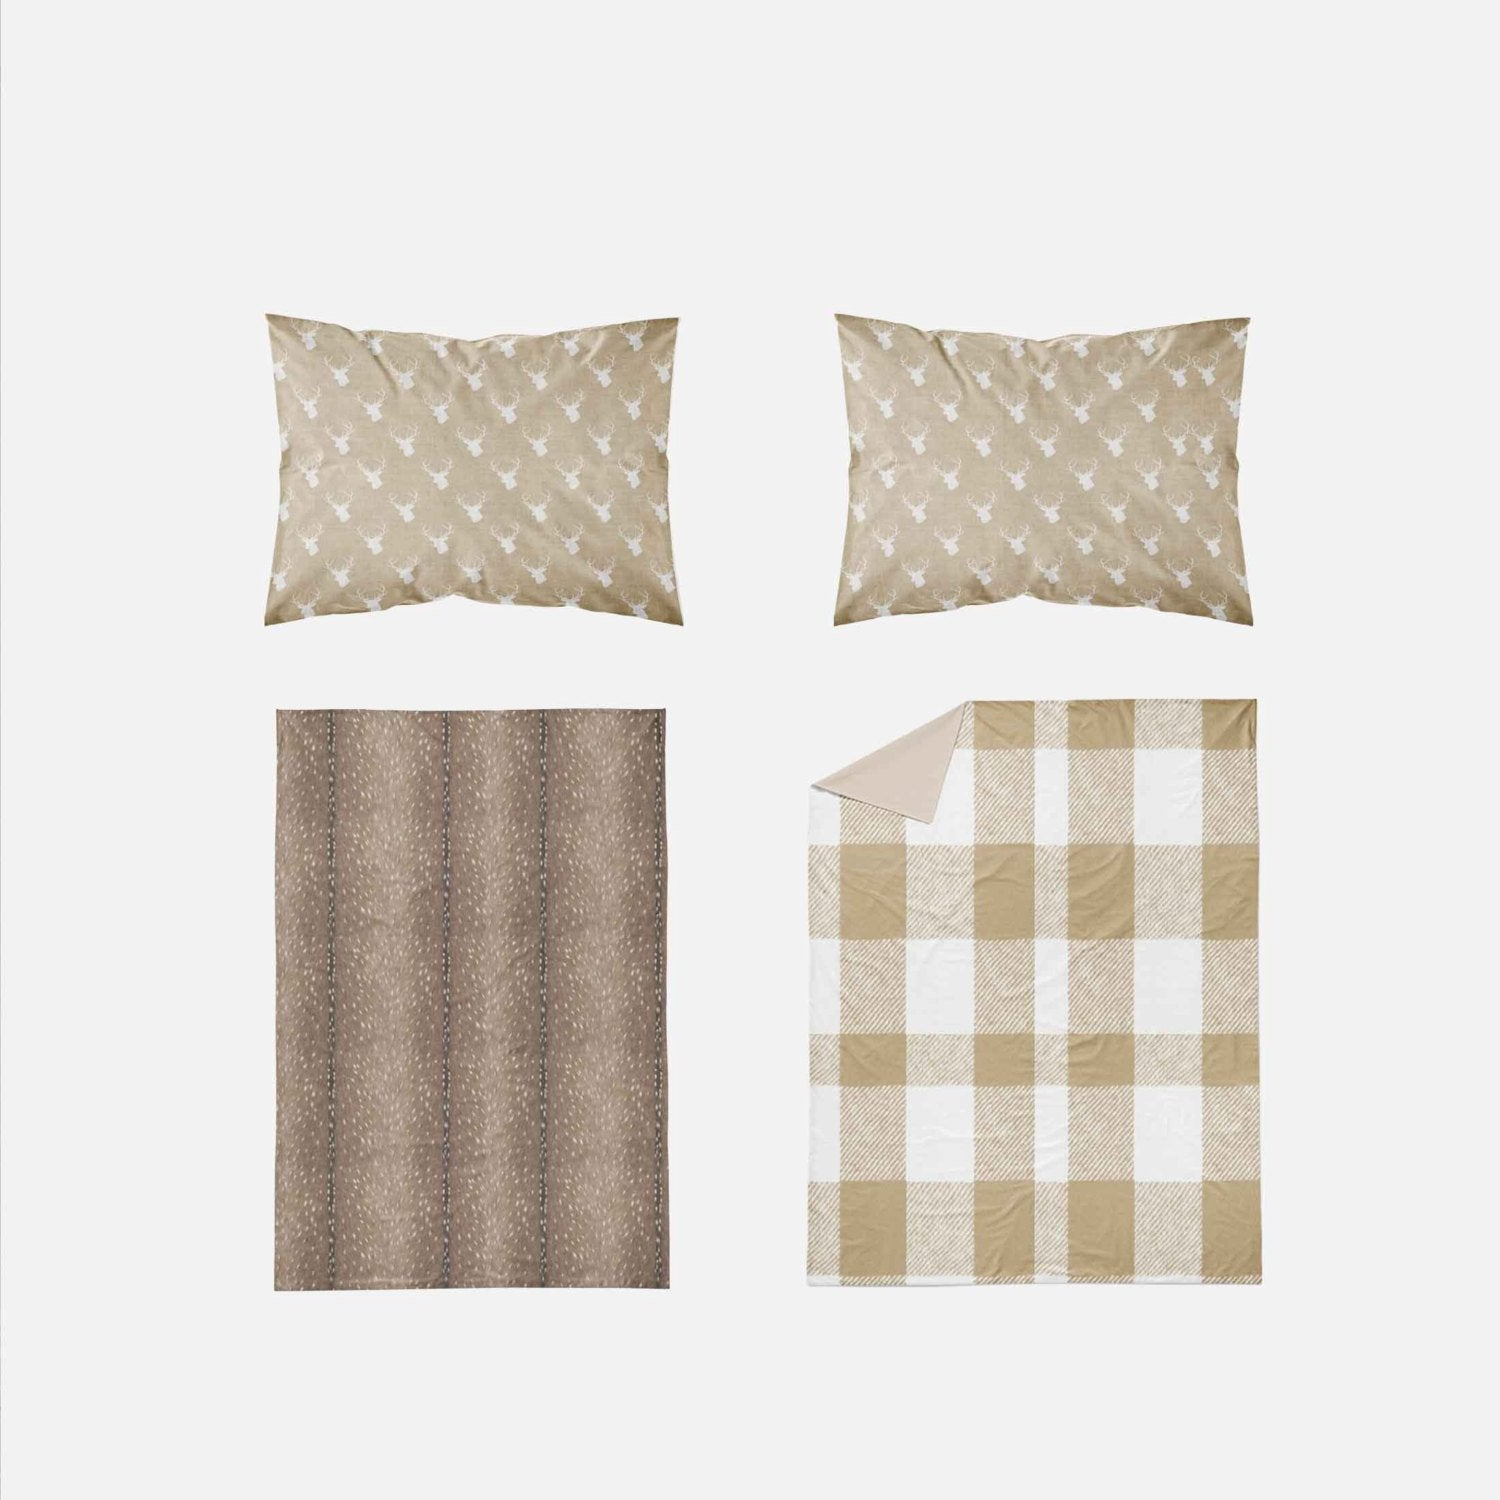 Woodland Toddler Bedding - Plaid Tan Deer - Dream Evergreen